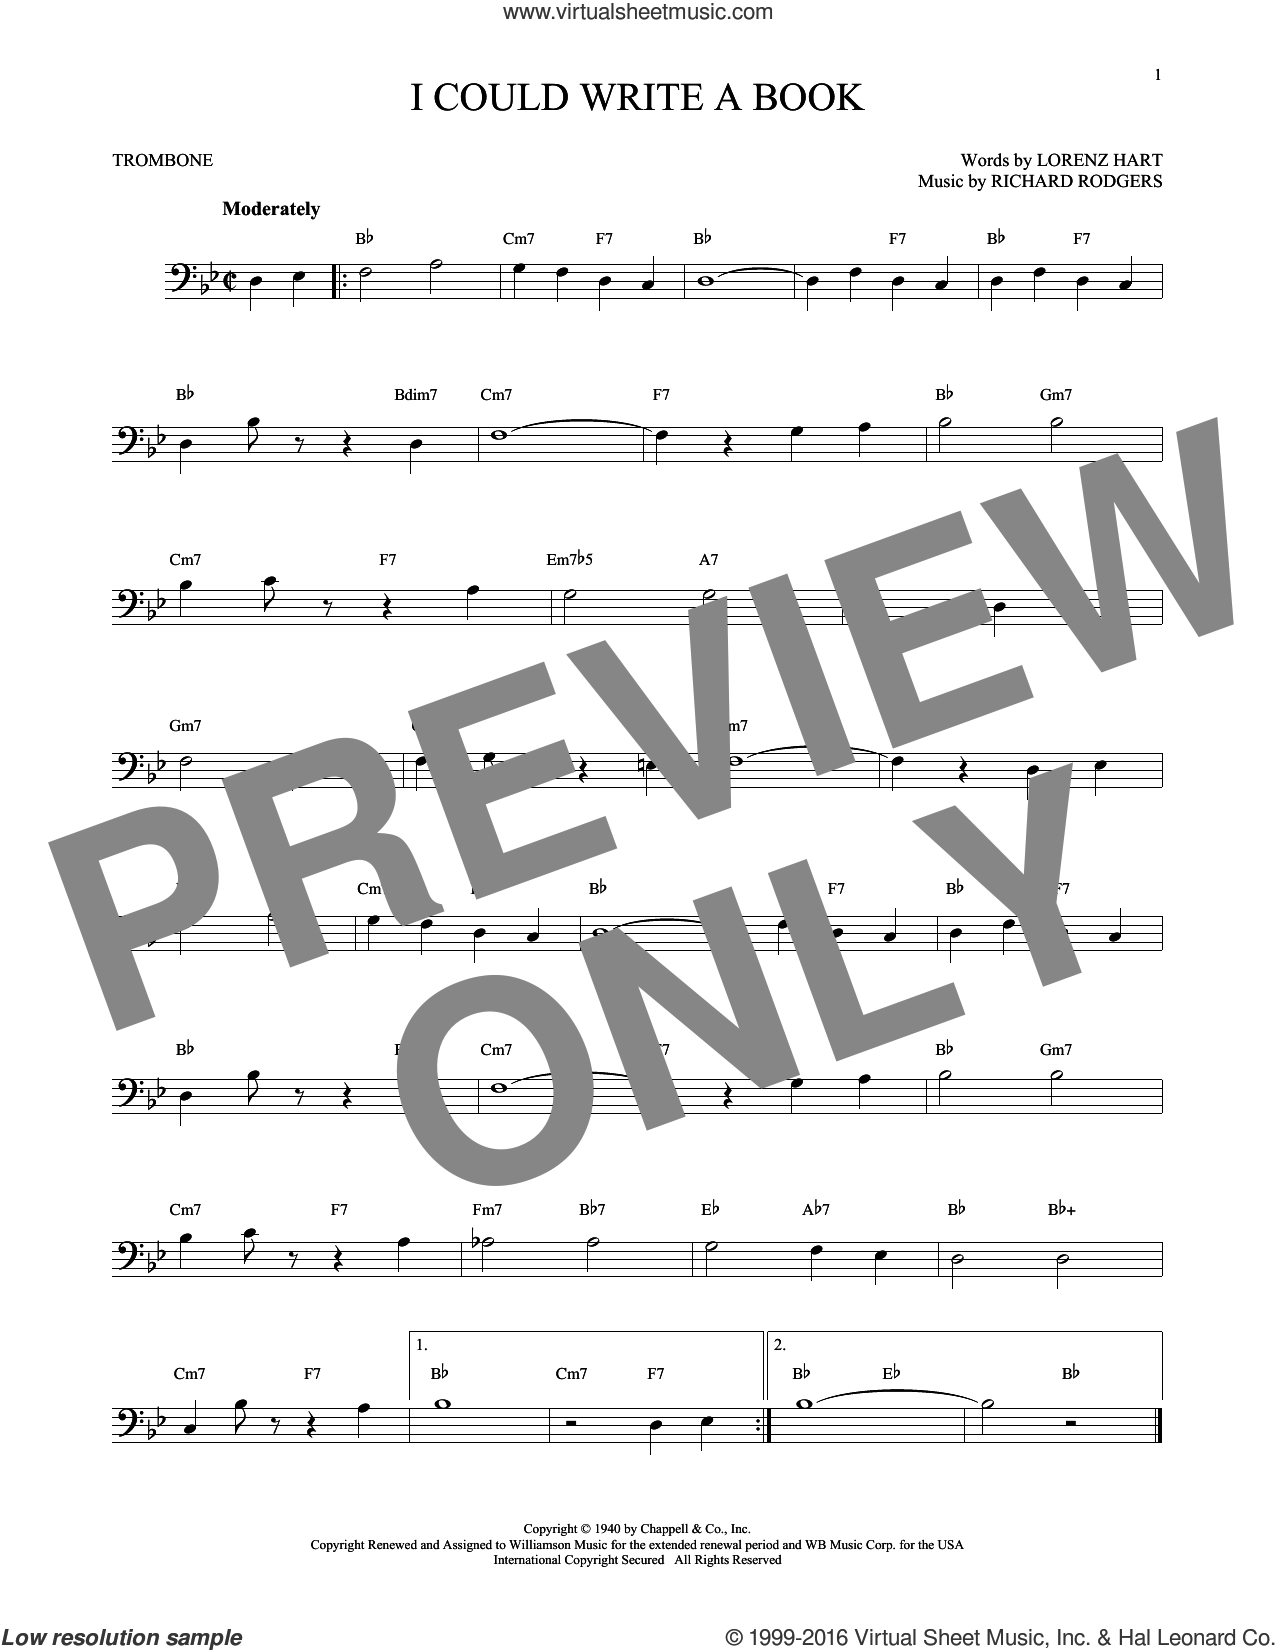 I Could Write A Book sheet music for trombone solo by Rodgers & Hart, Jerry Butler, Lorenz Hart and Richard Rodgers, intermediate skill level